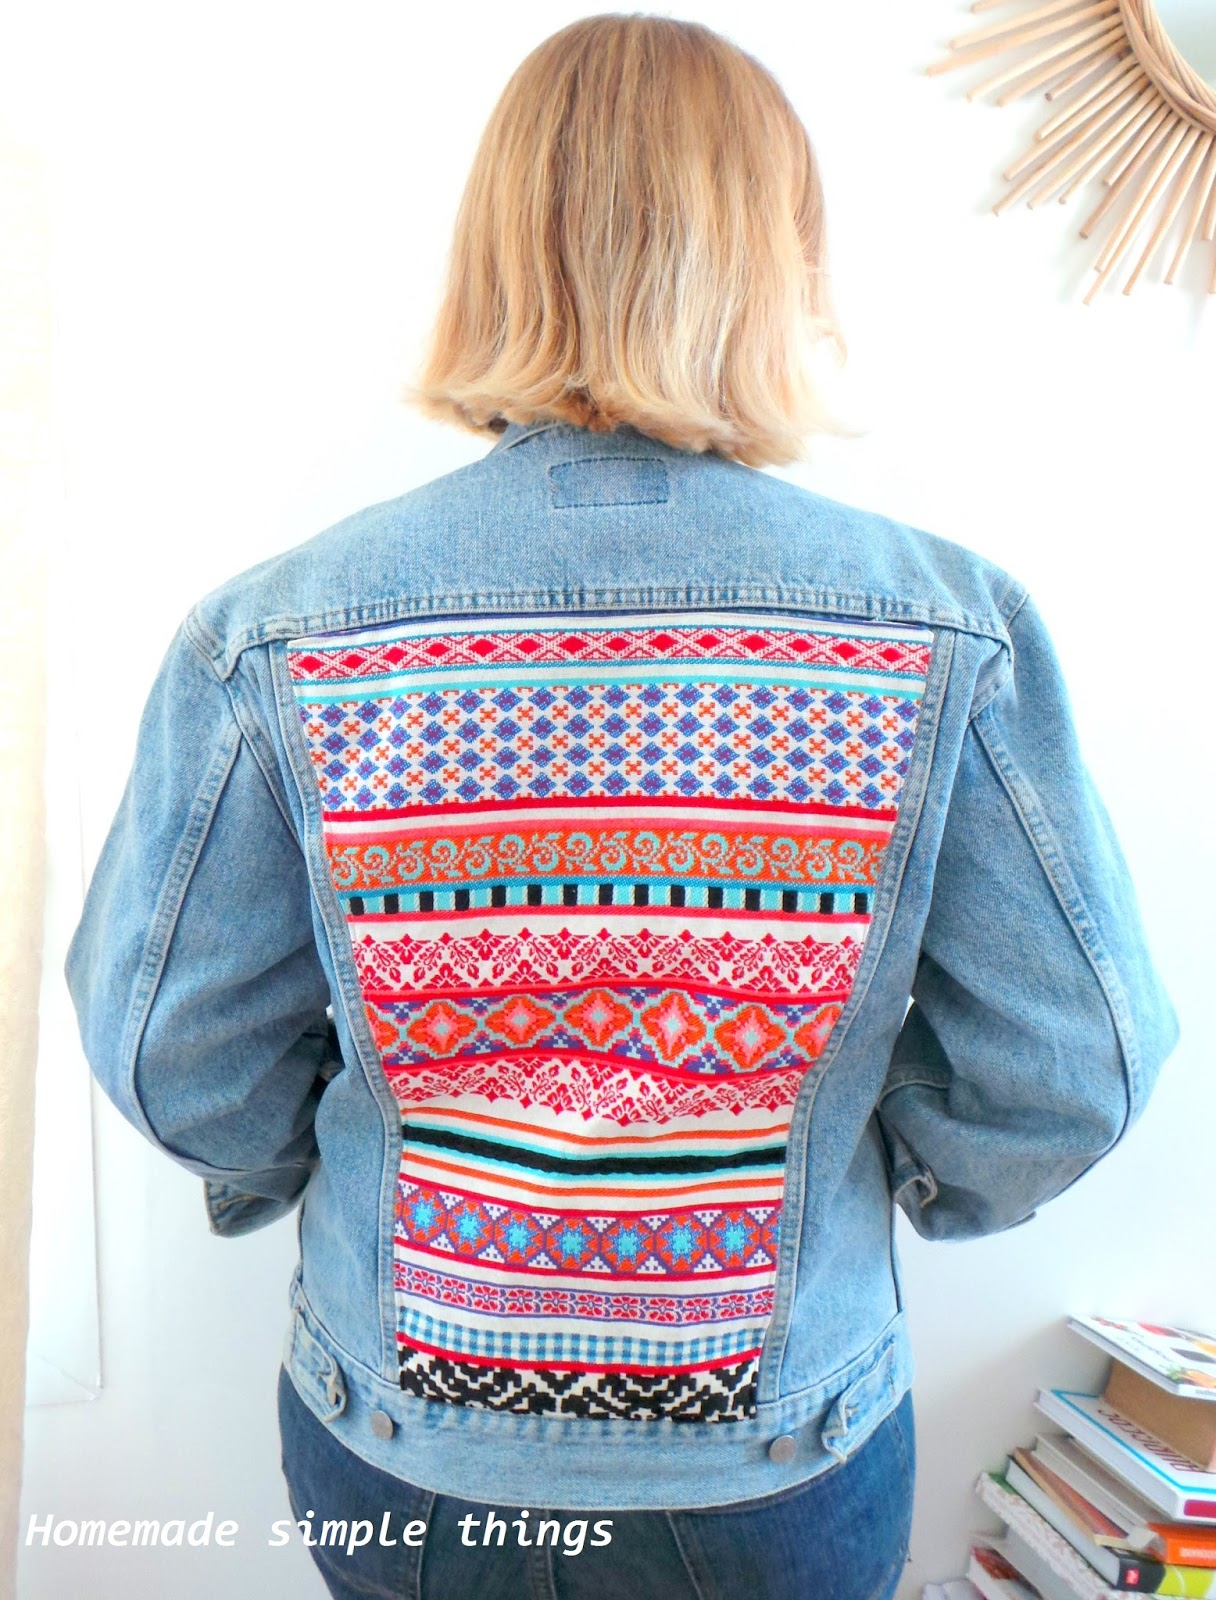 Jean Things Avec Un Une Veste Homemade En Tissu Customiser Simple YUnq5